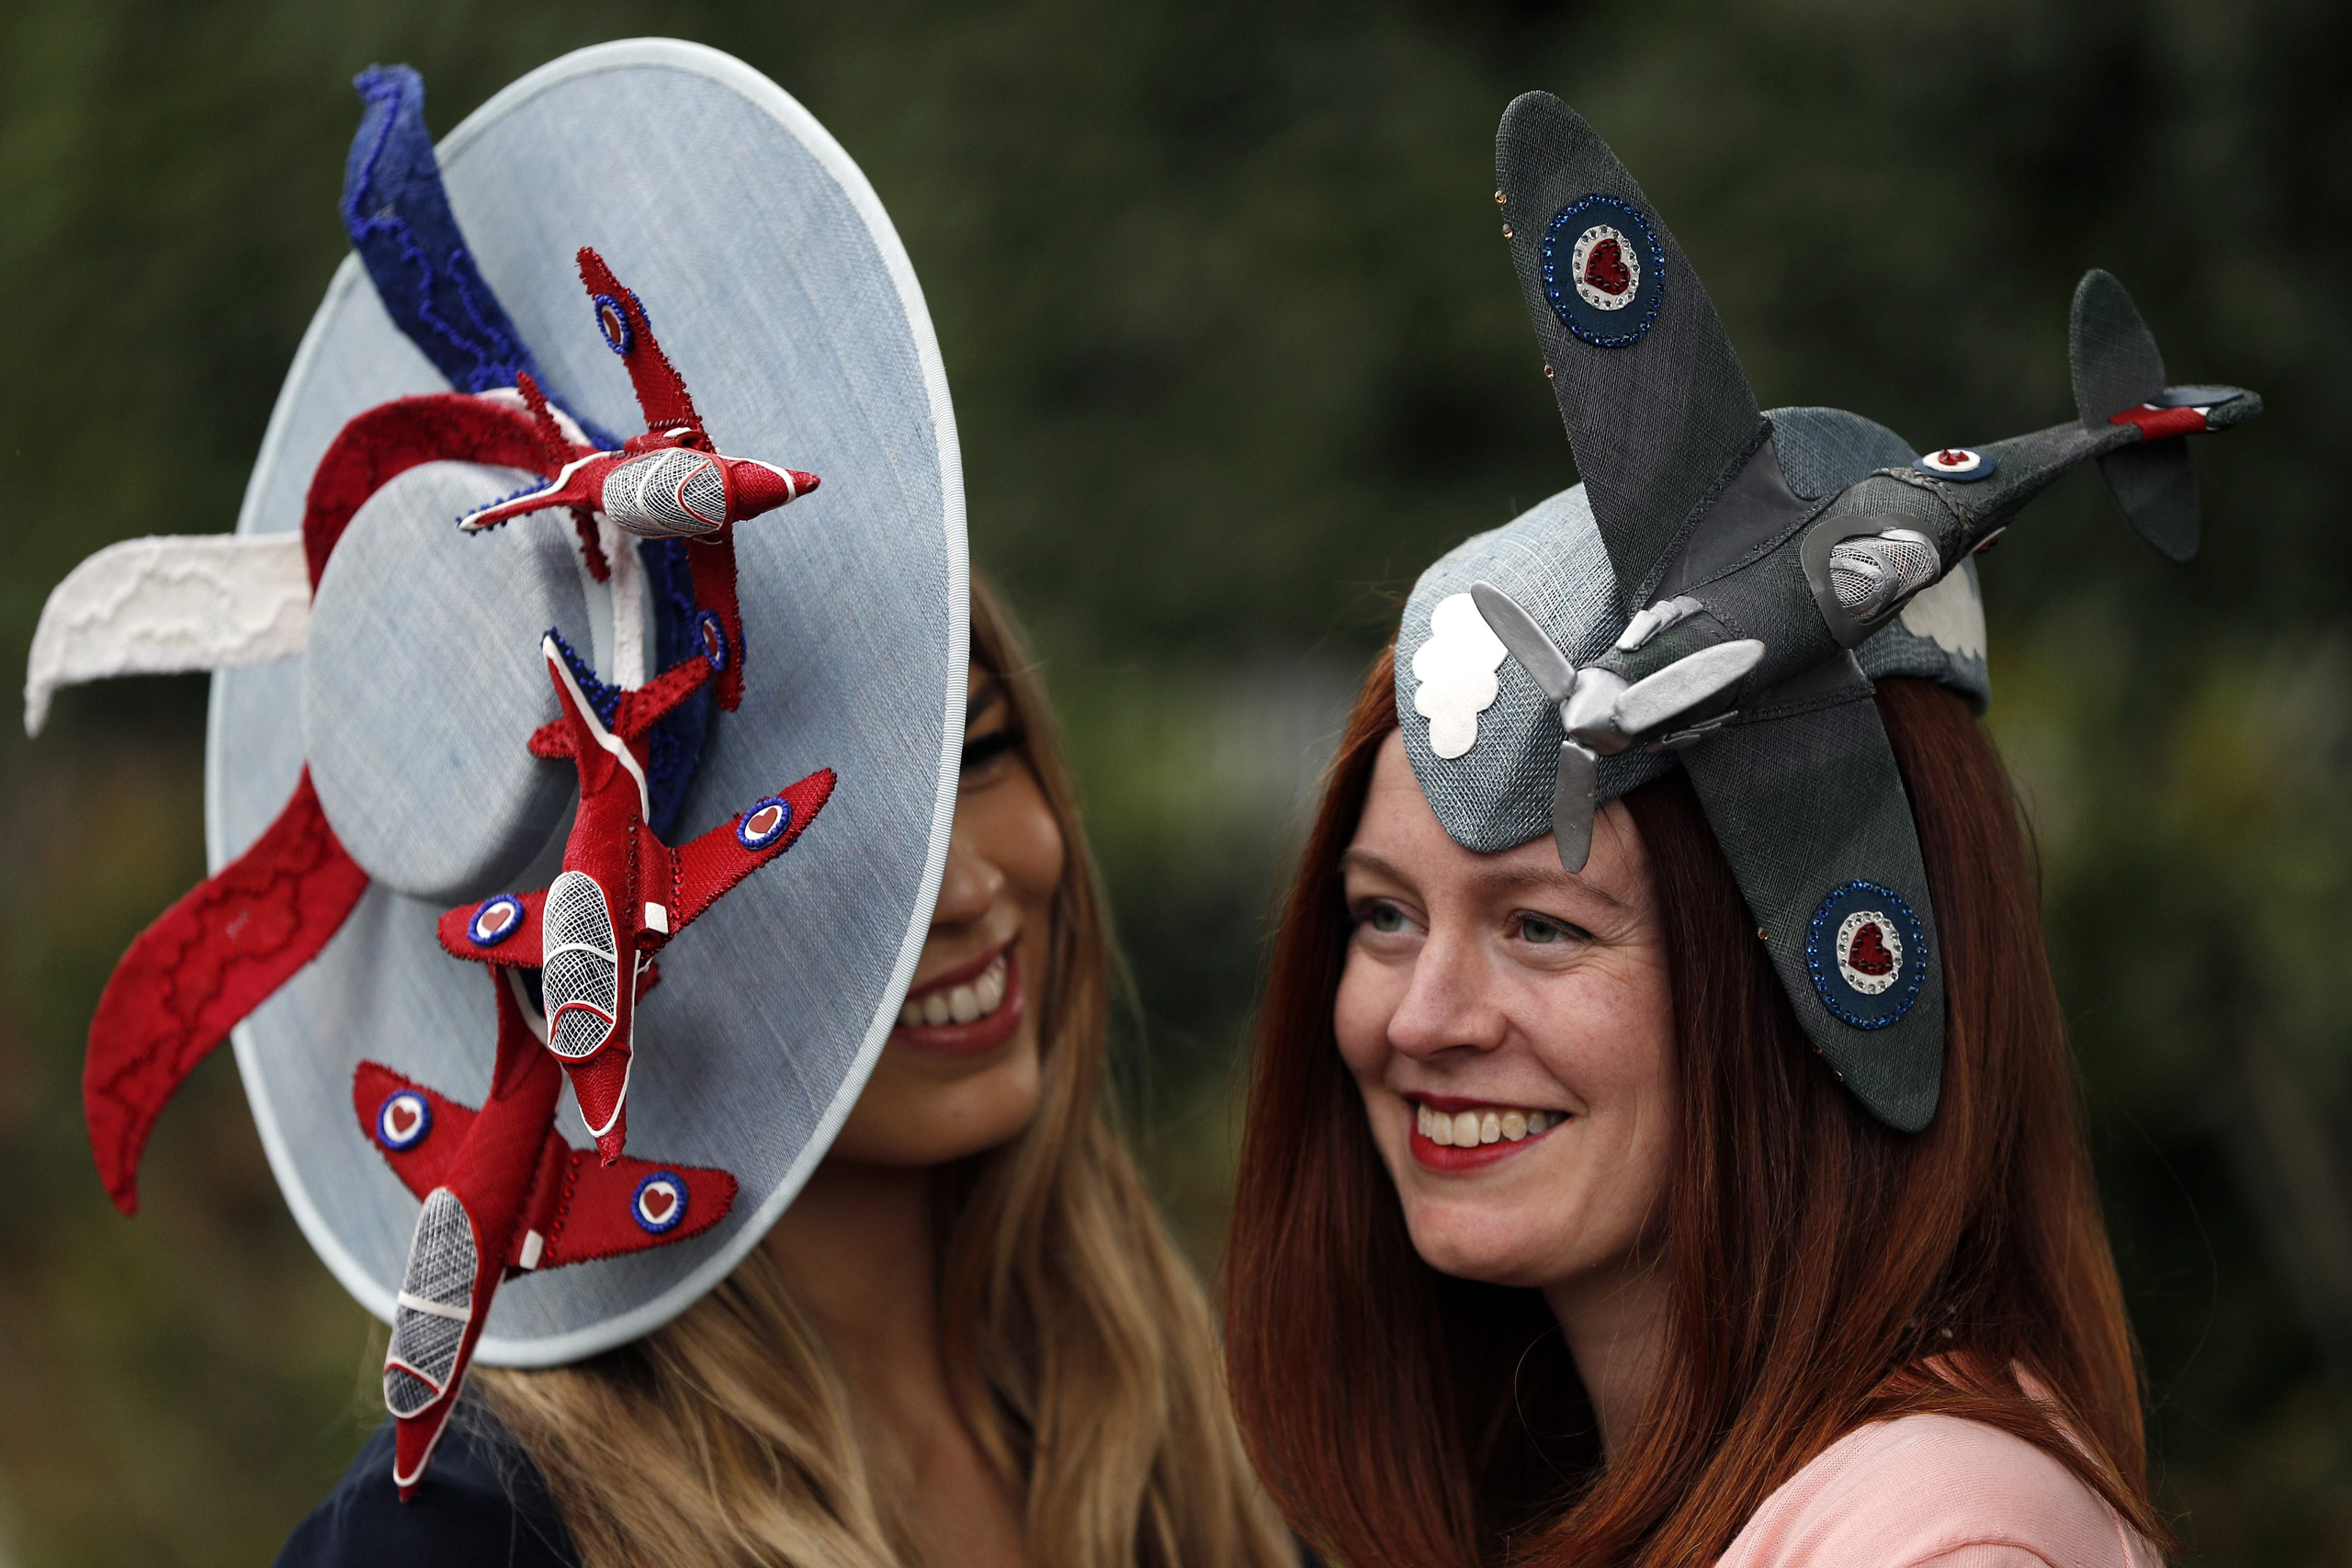 Race-goers pose for a photograph at the Royal Ascot horse race meeting in Ascot, U.K., on June 17, 2016.